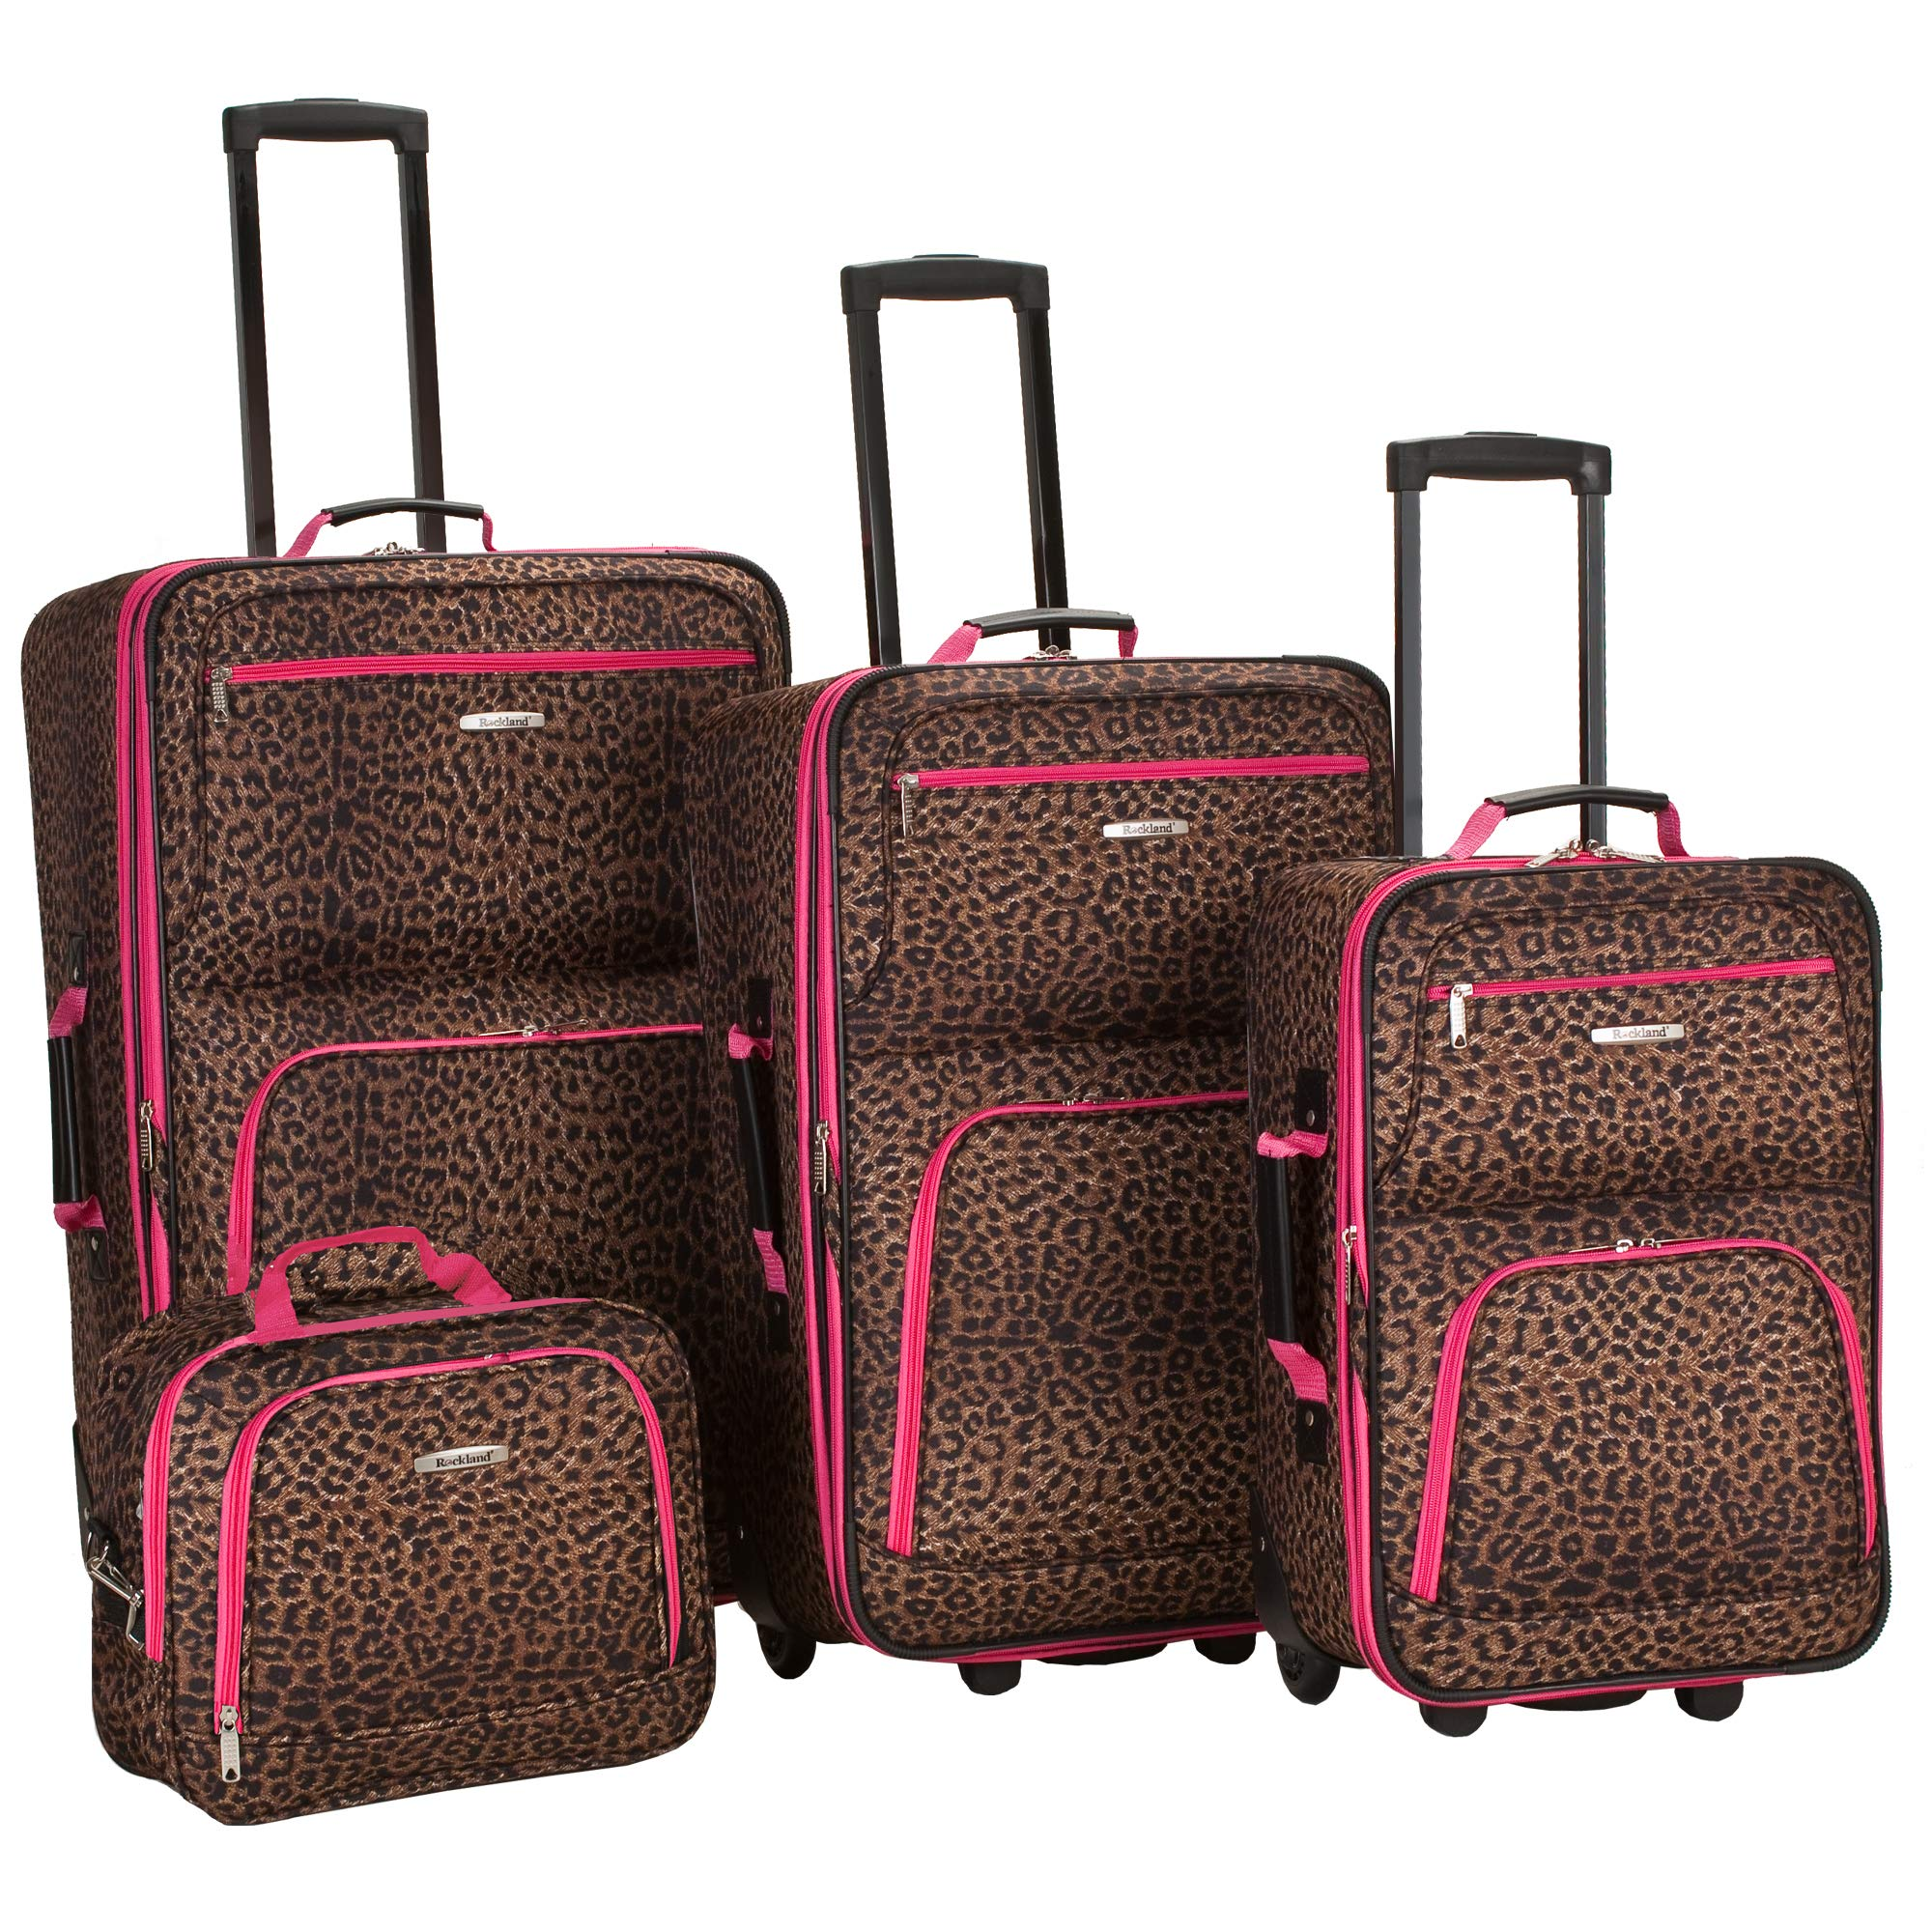 Rockland Luggage 4 Piece Luggage Set, Pink Leopard, Medium by Rockland